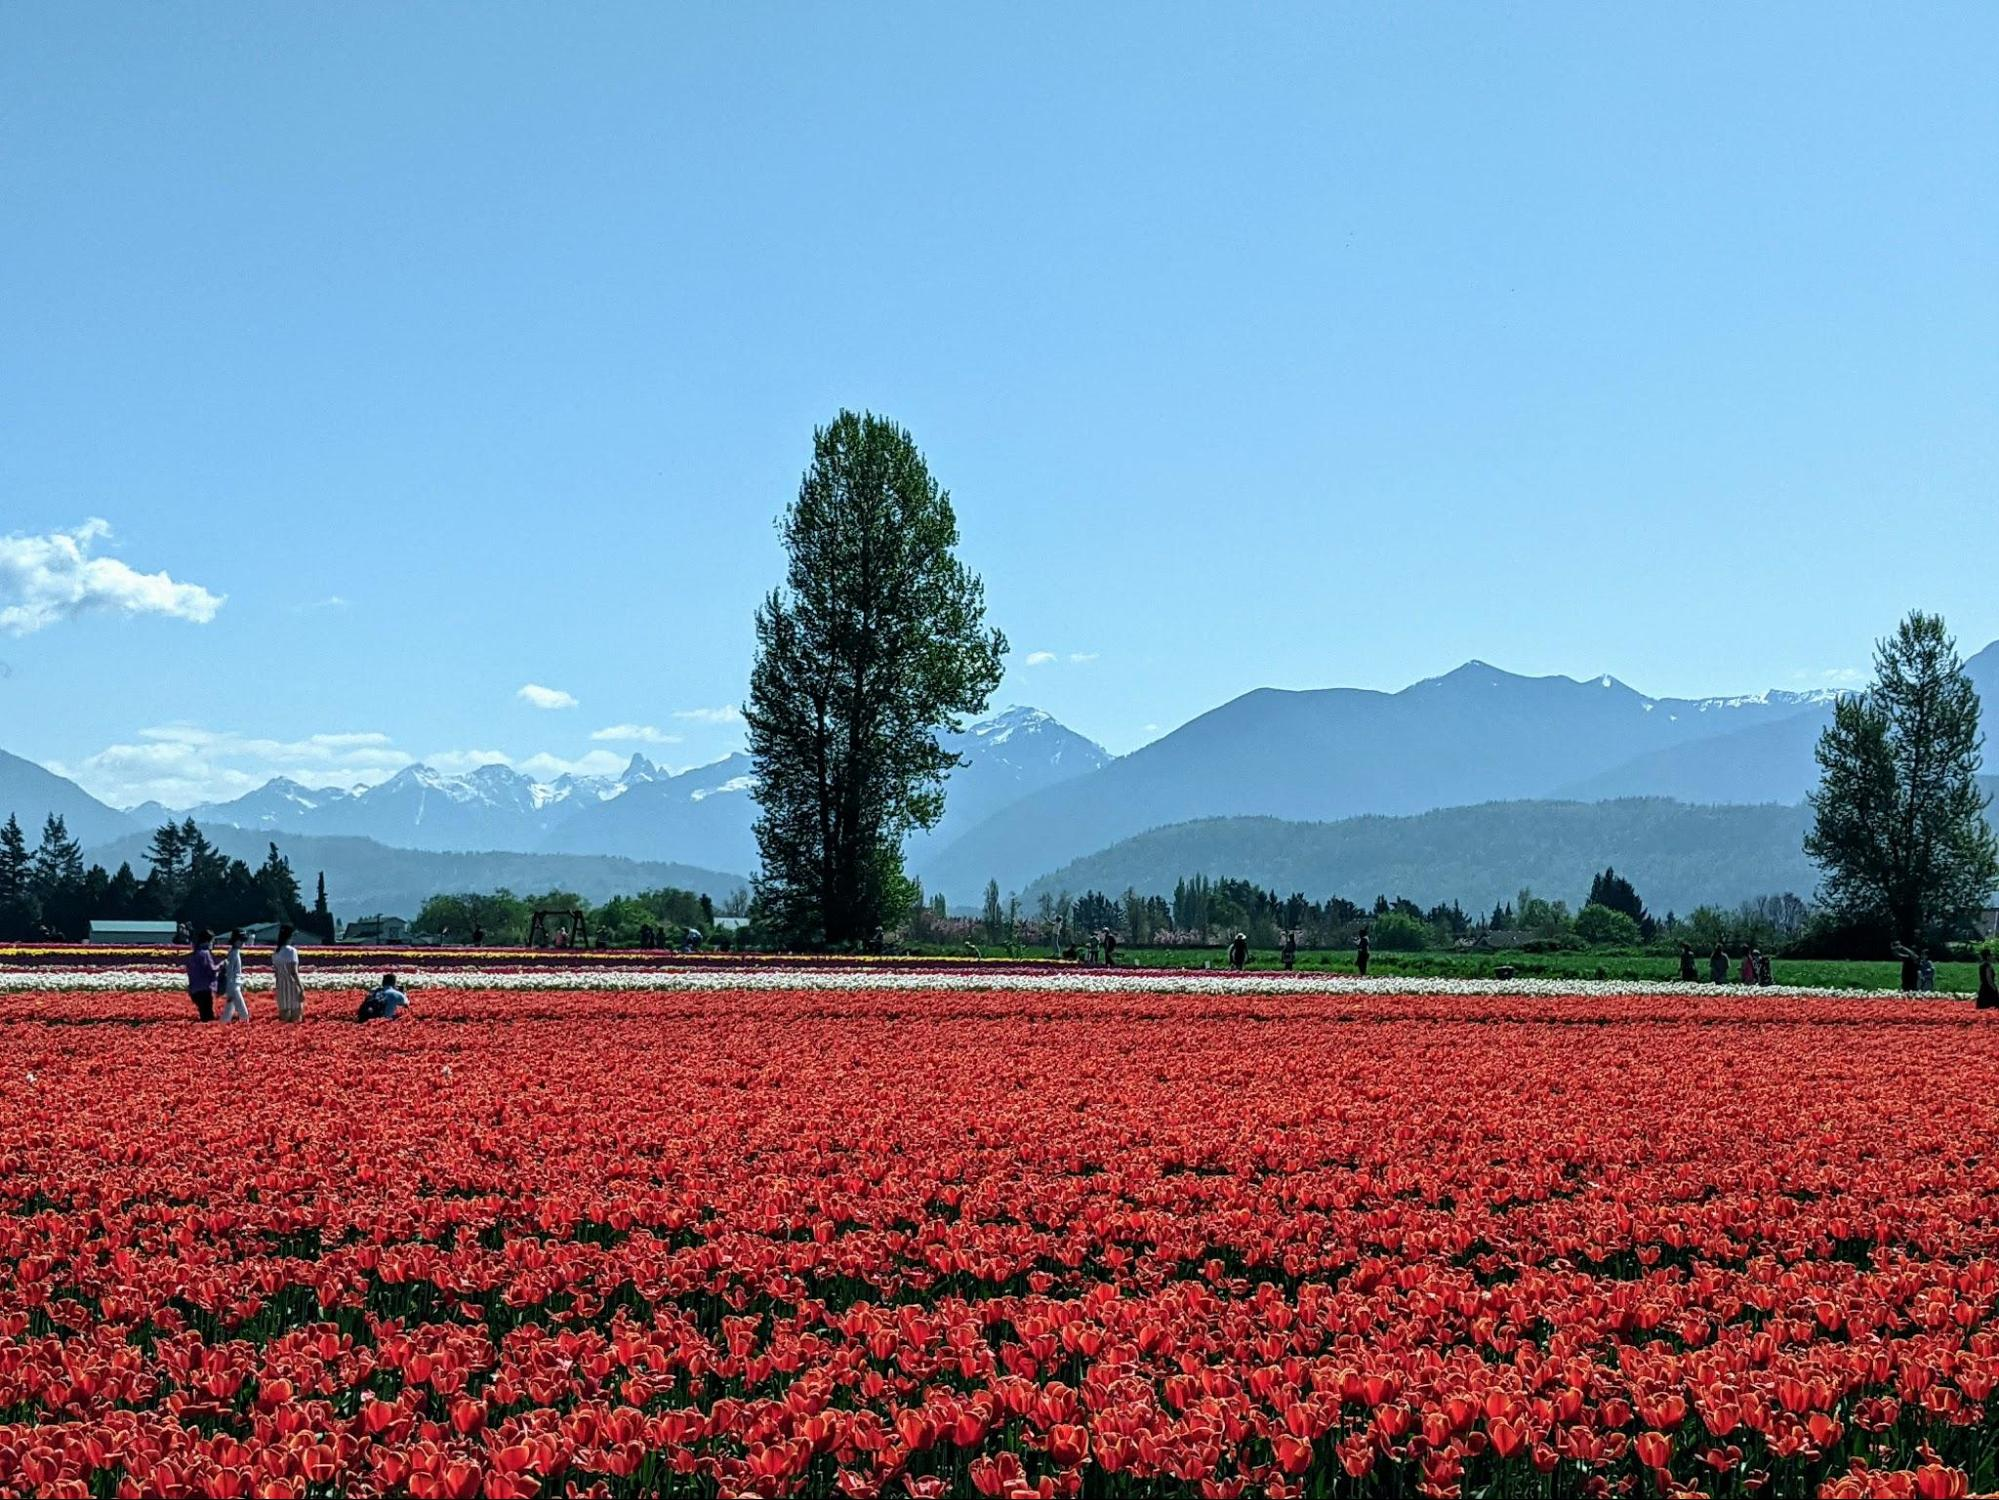 A field of red tulips at the Chilliwack tulip festival with Mt Cheam in the distance.